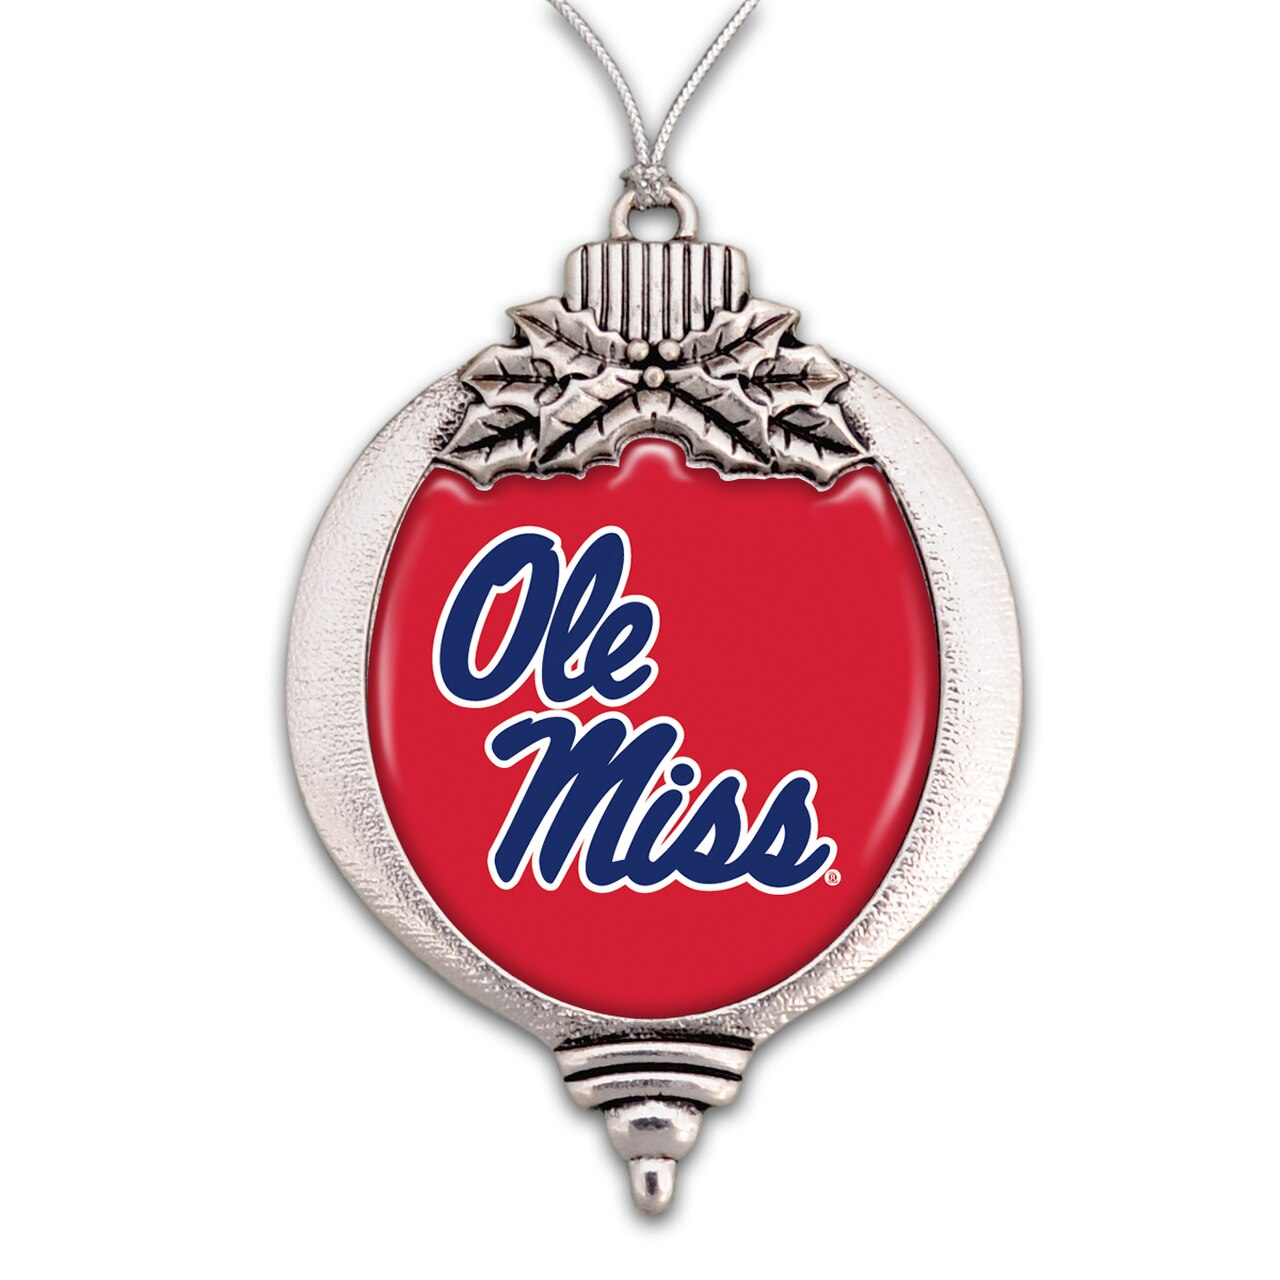 Ole Miss Bulb Ornament